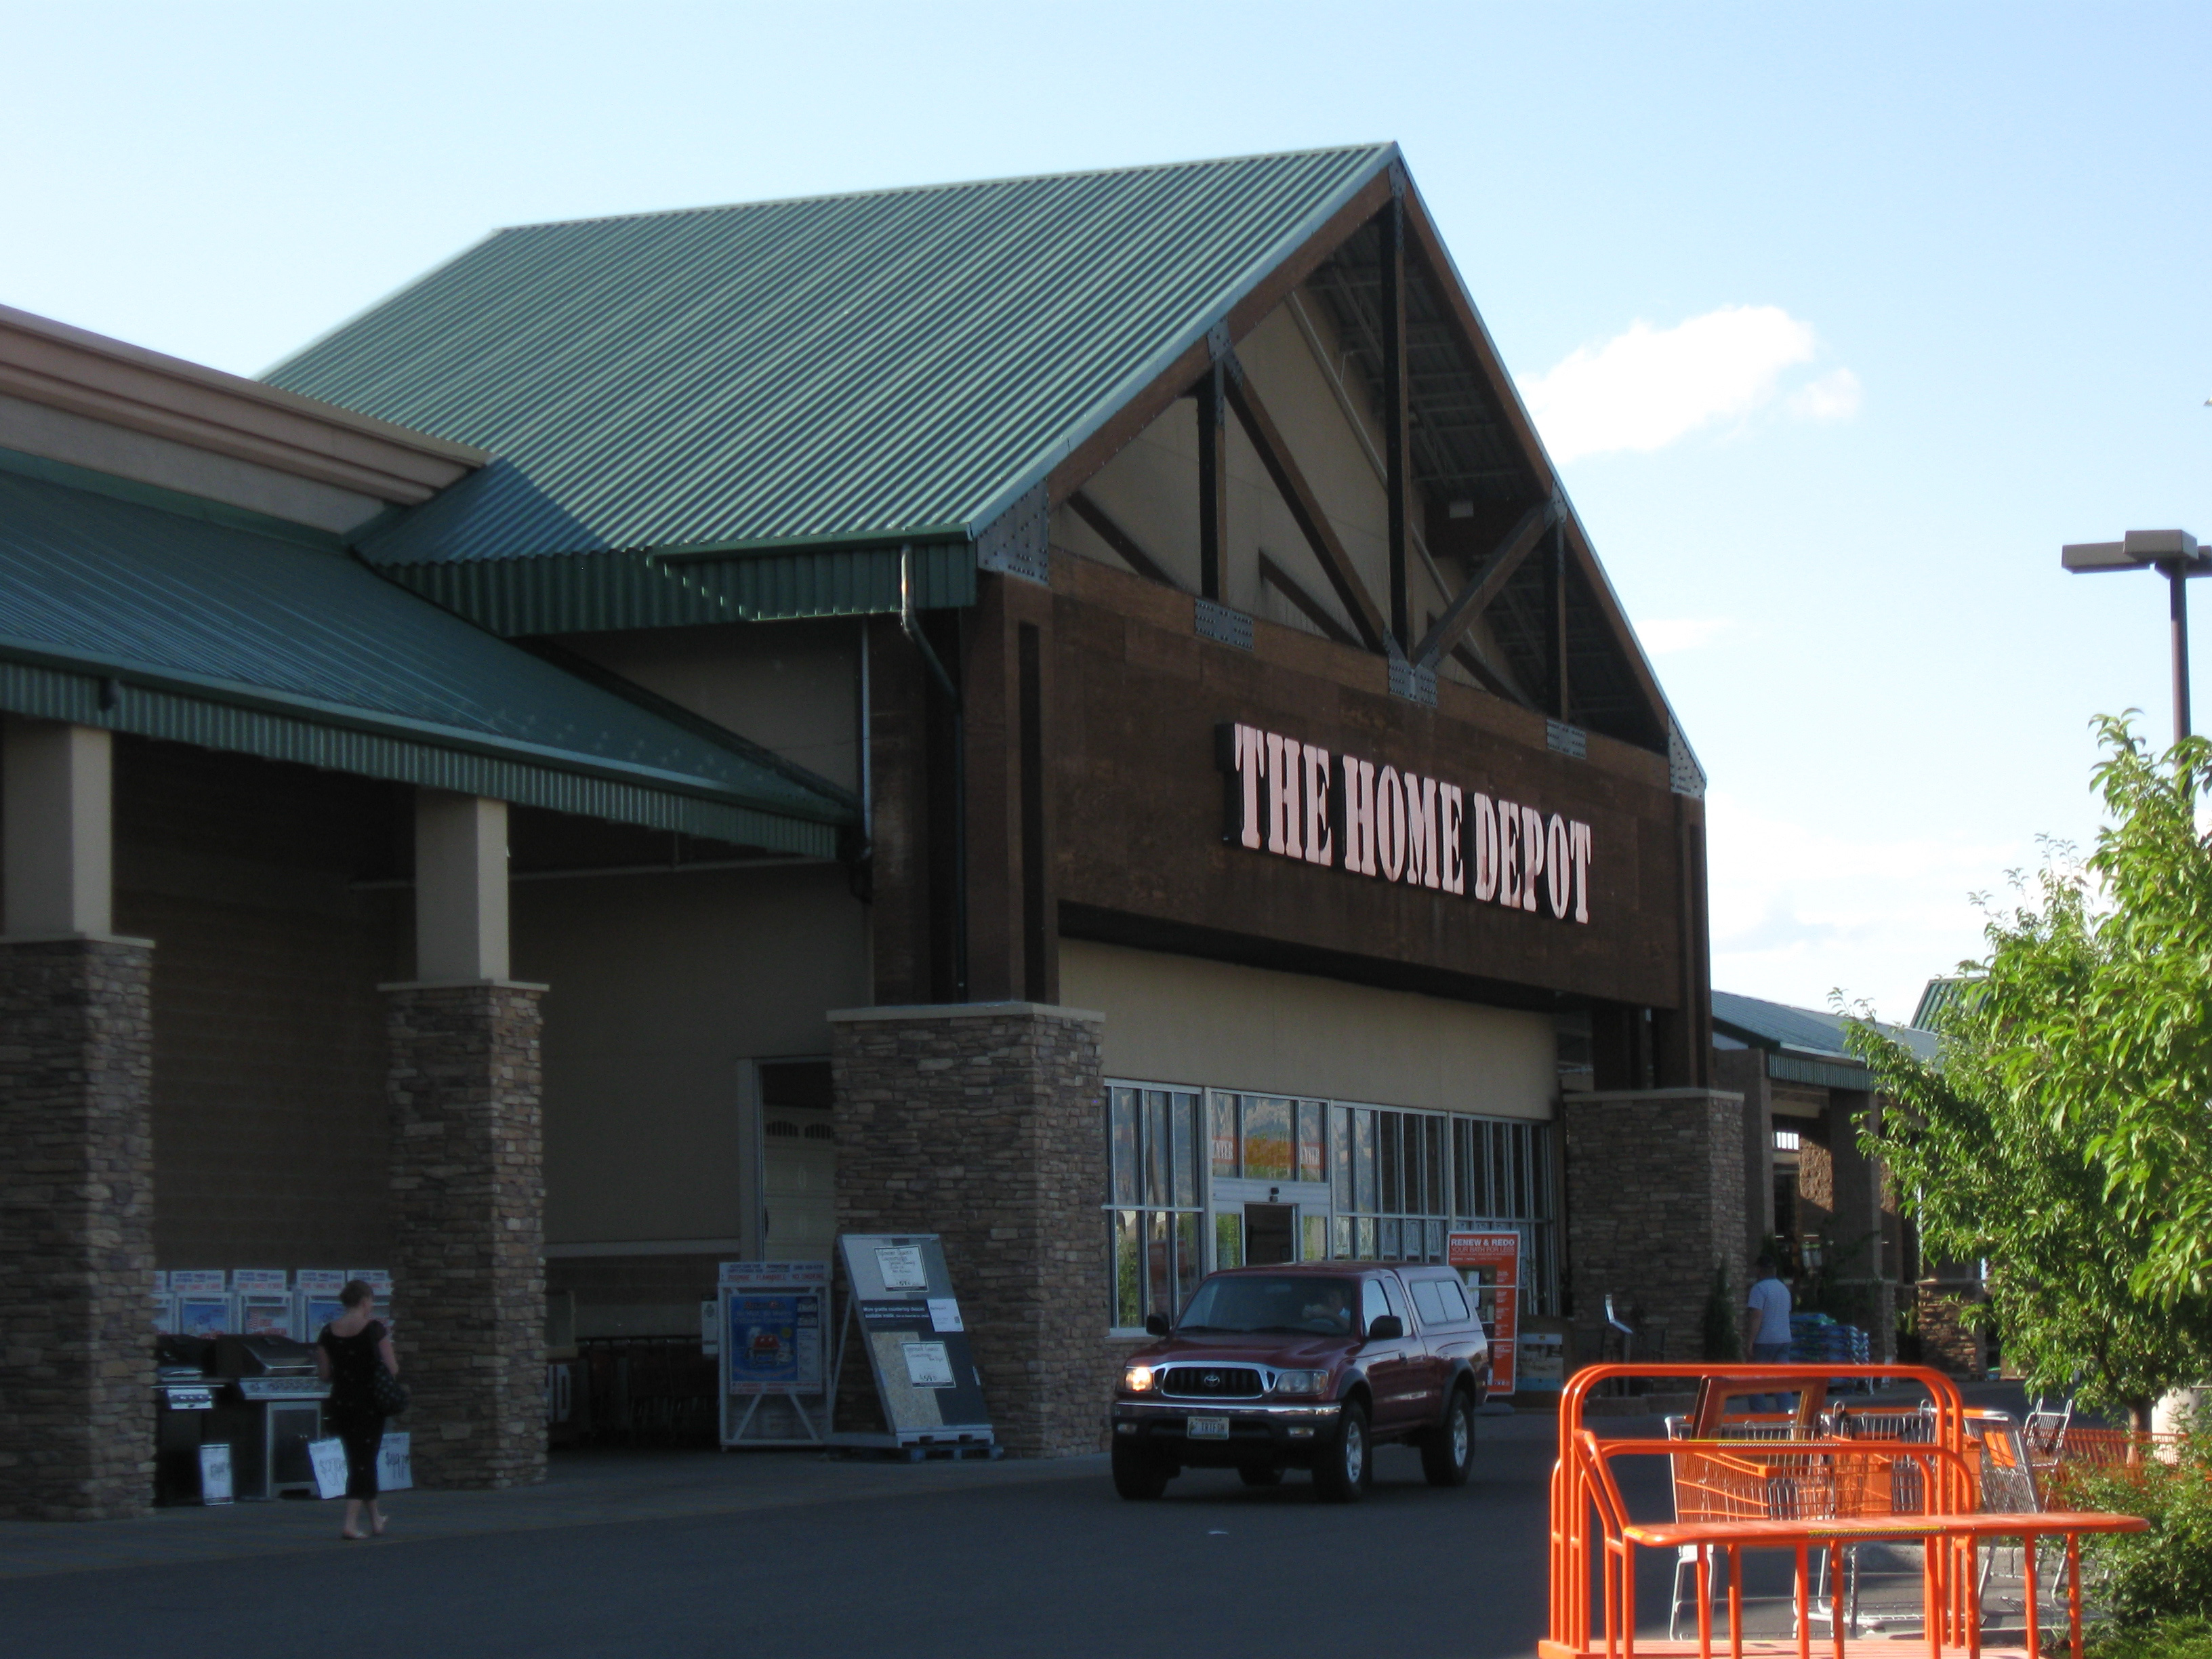 IMG_4216.jpg - Even the Home Depot looks rustic in Bozeman